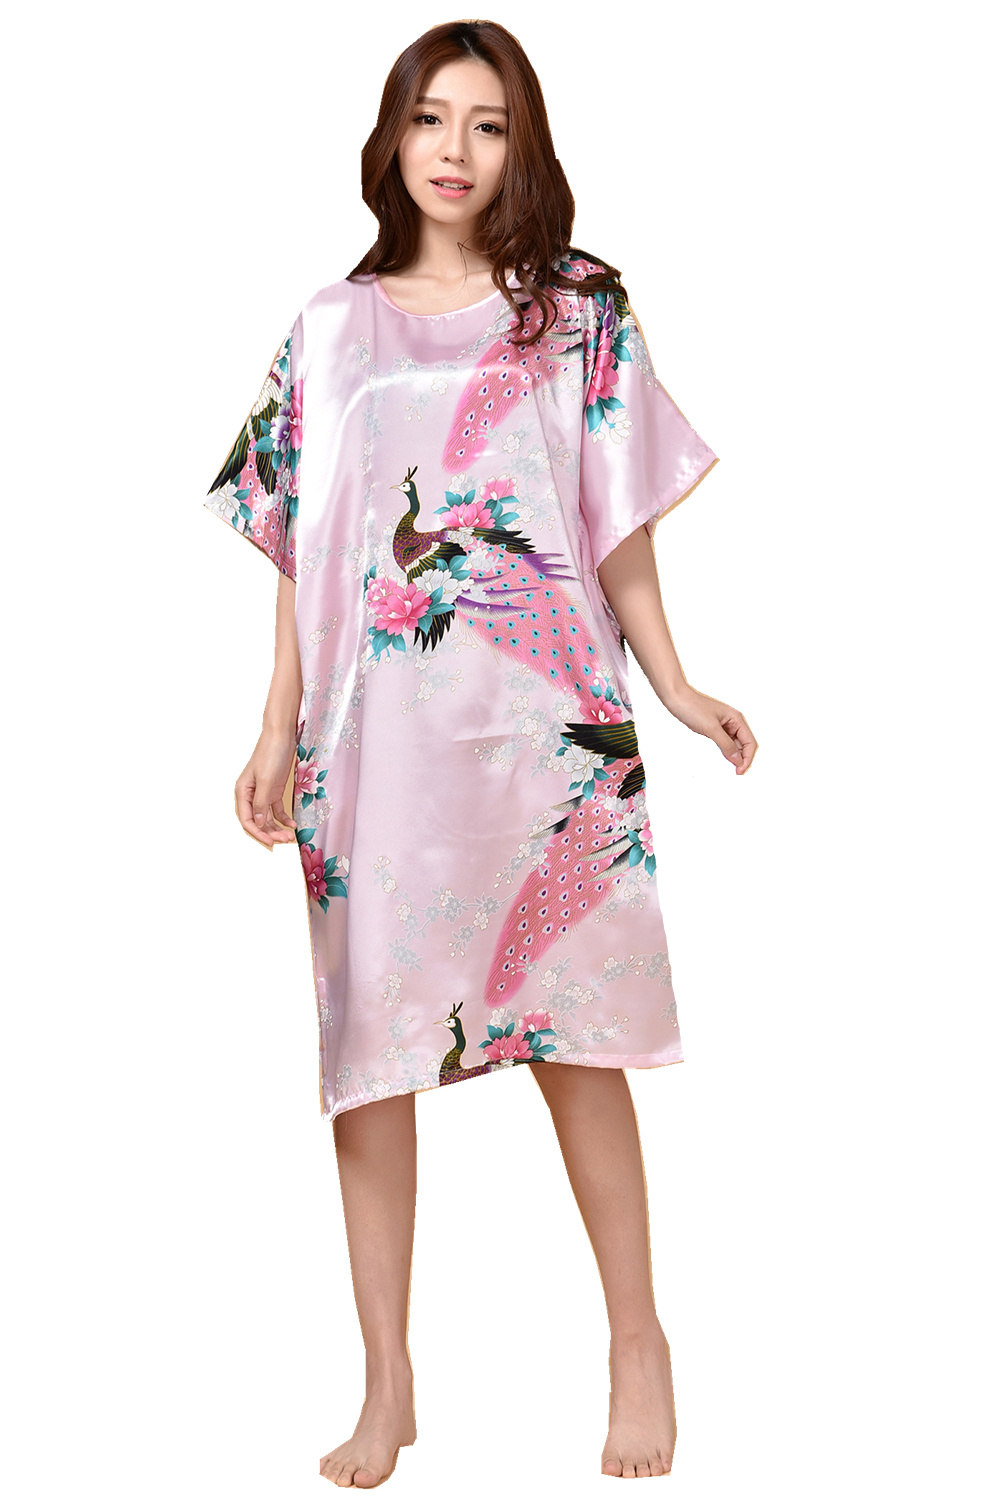 Plus Size Pink Summer Womens Robe Bathrobe Sleepwear New Chinese